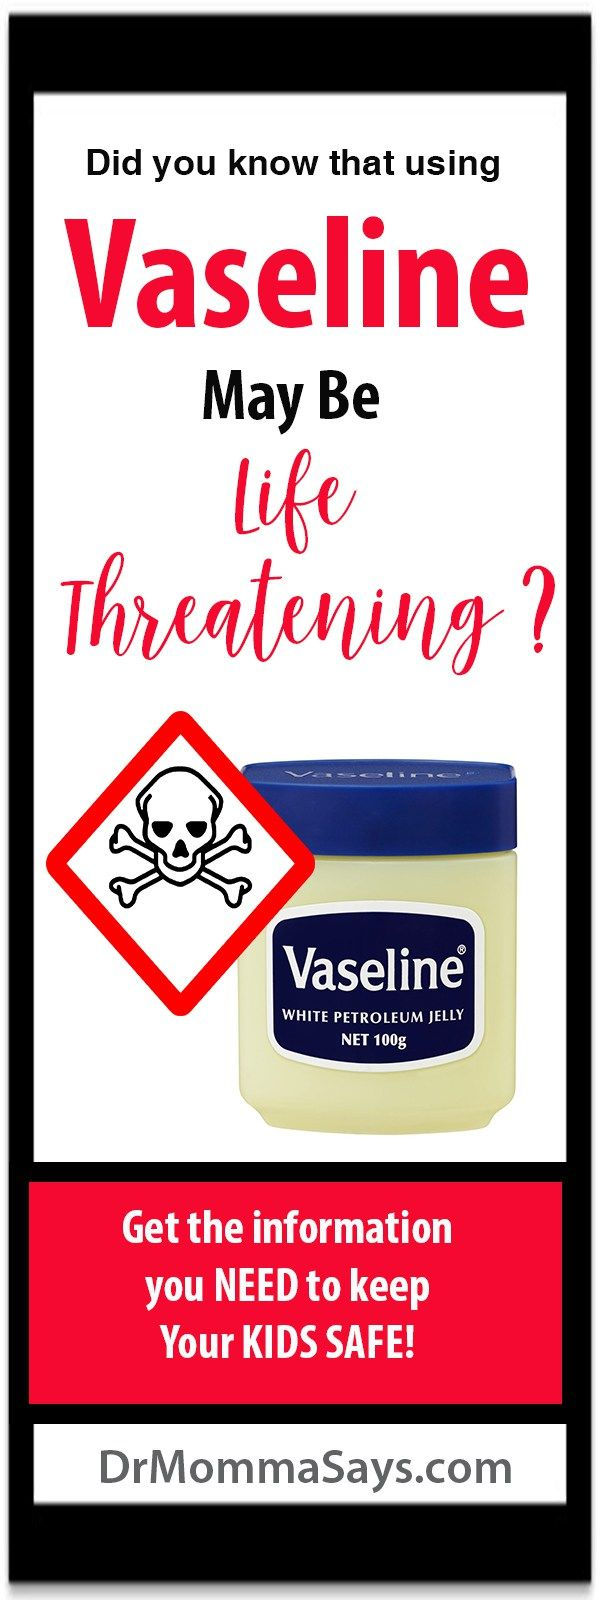 Dr. Momma shares critical information about the dangers of placing vaseline in the nose to treat dry nose from allergies and other causes.